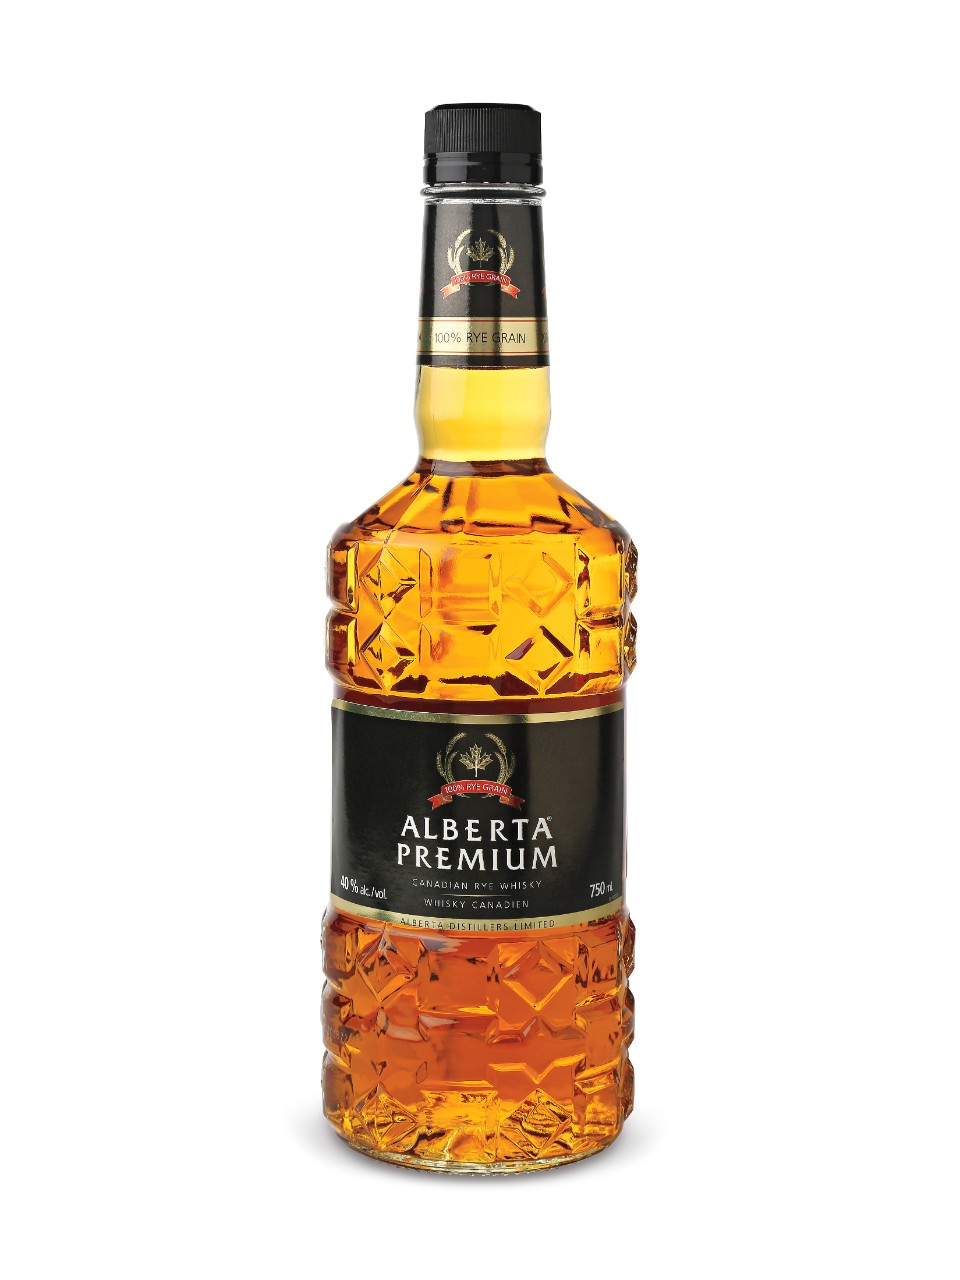 Alberta Premium Whisky from LCBO